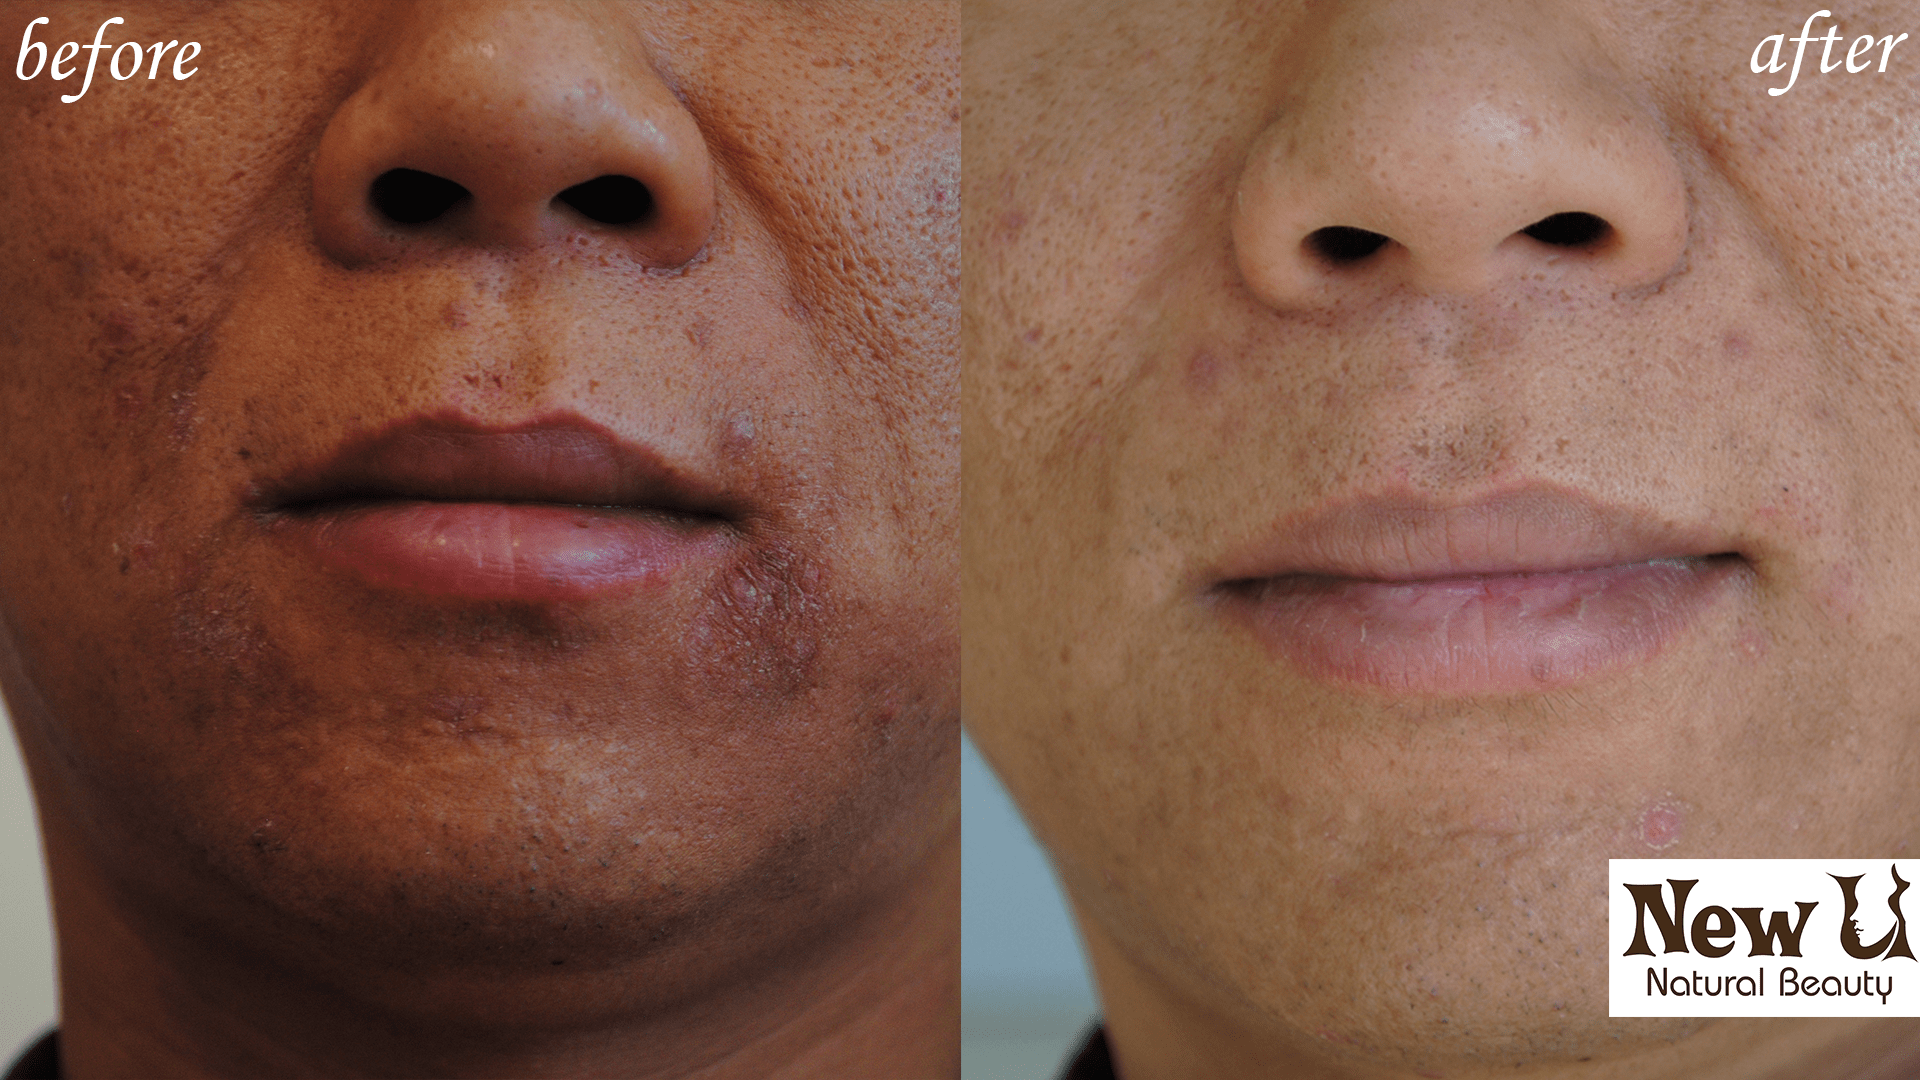 Acne Treatment Scar Removal Services Las Vegas Before and After